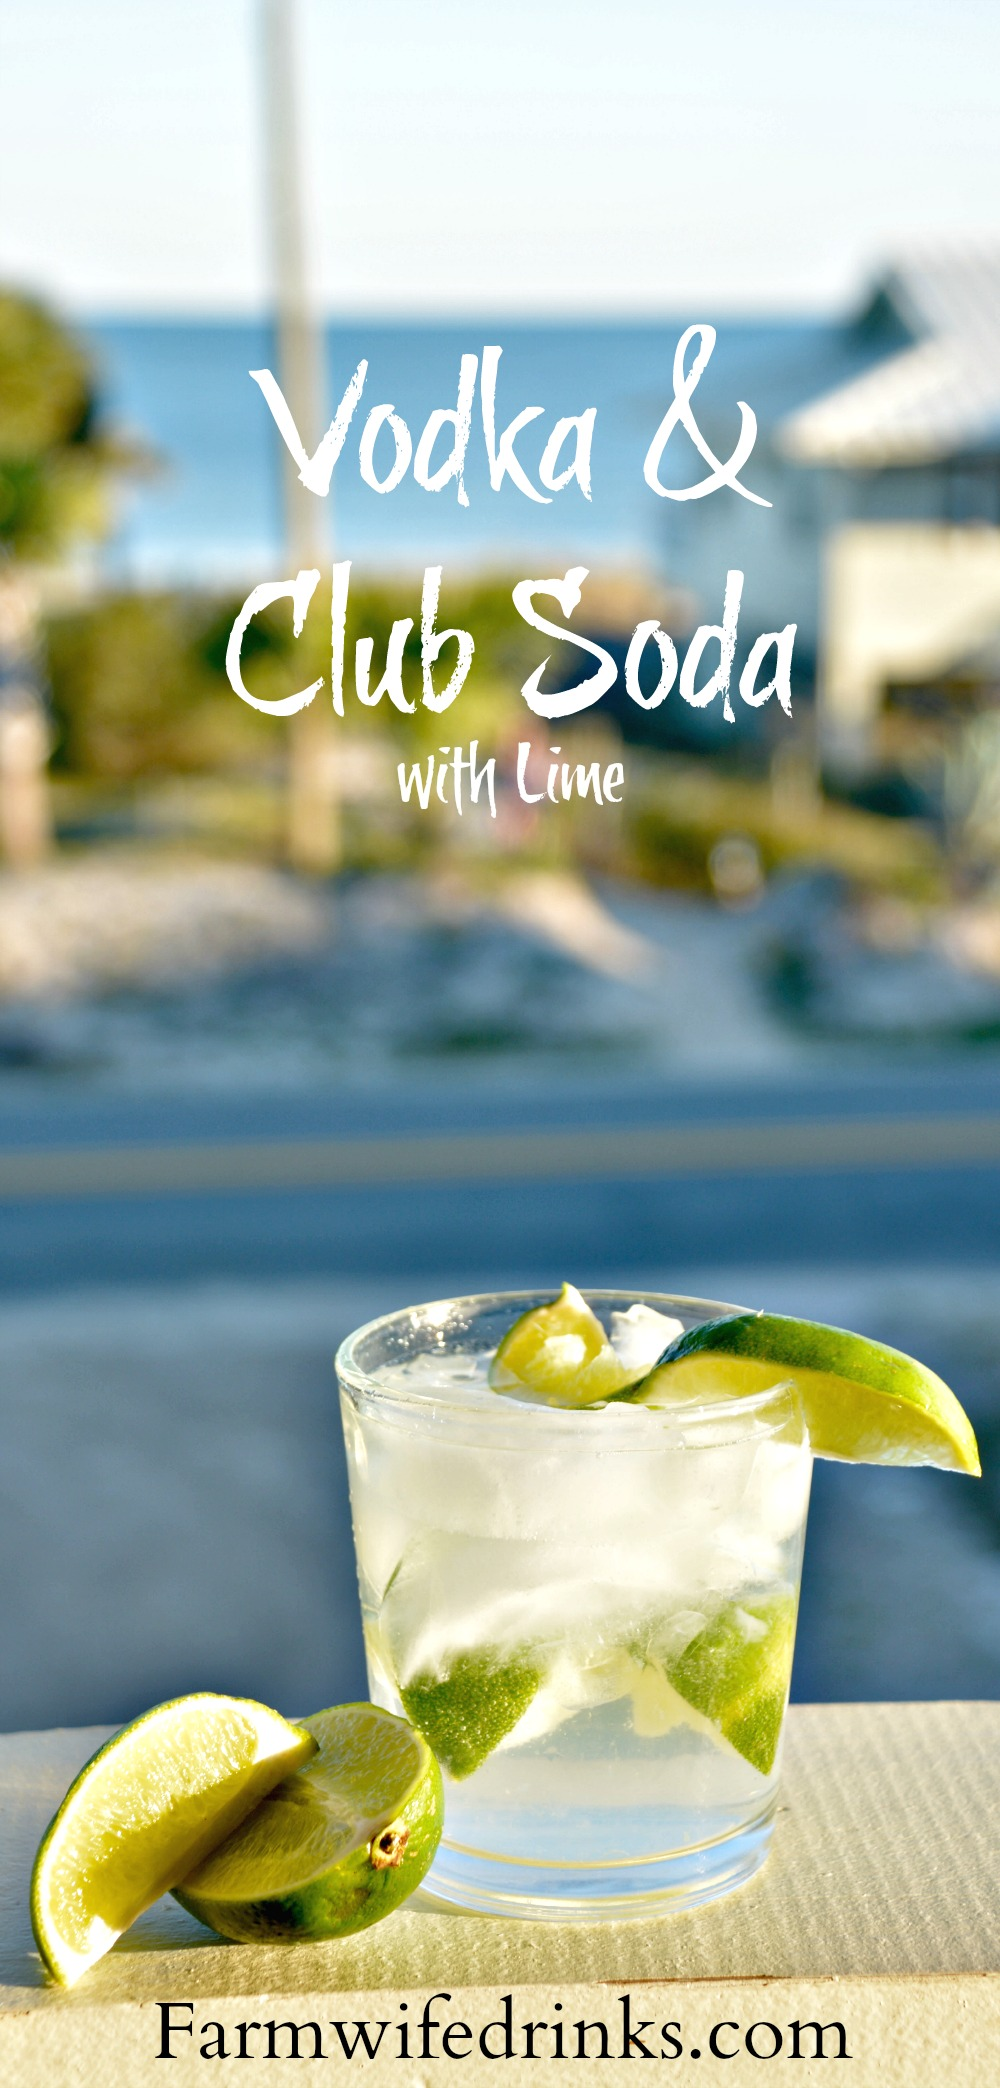 Tito's vodka and club soda with lots of lime is my favorite go-to cocktail when I want a light but stiff drink.